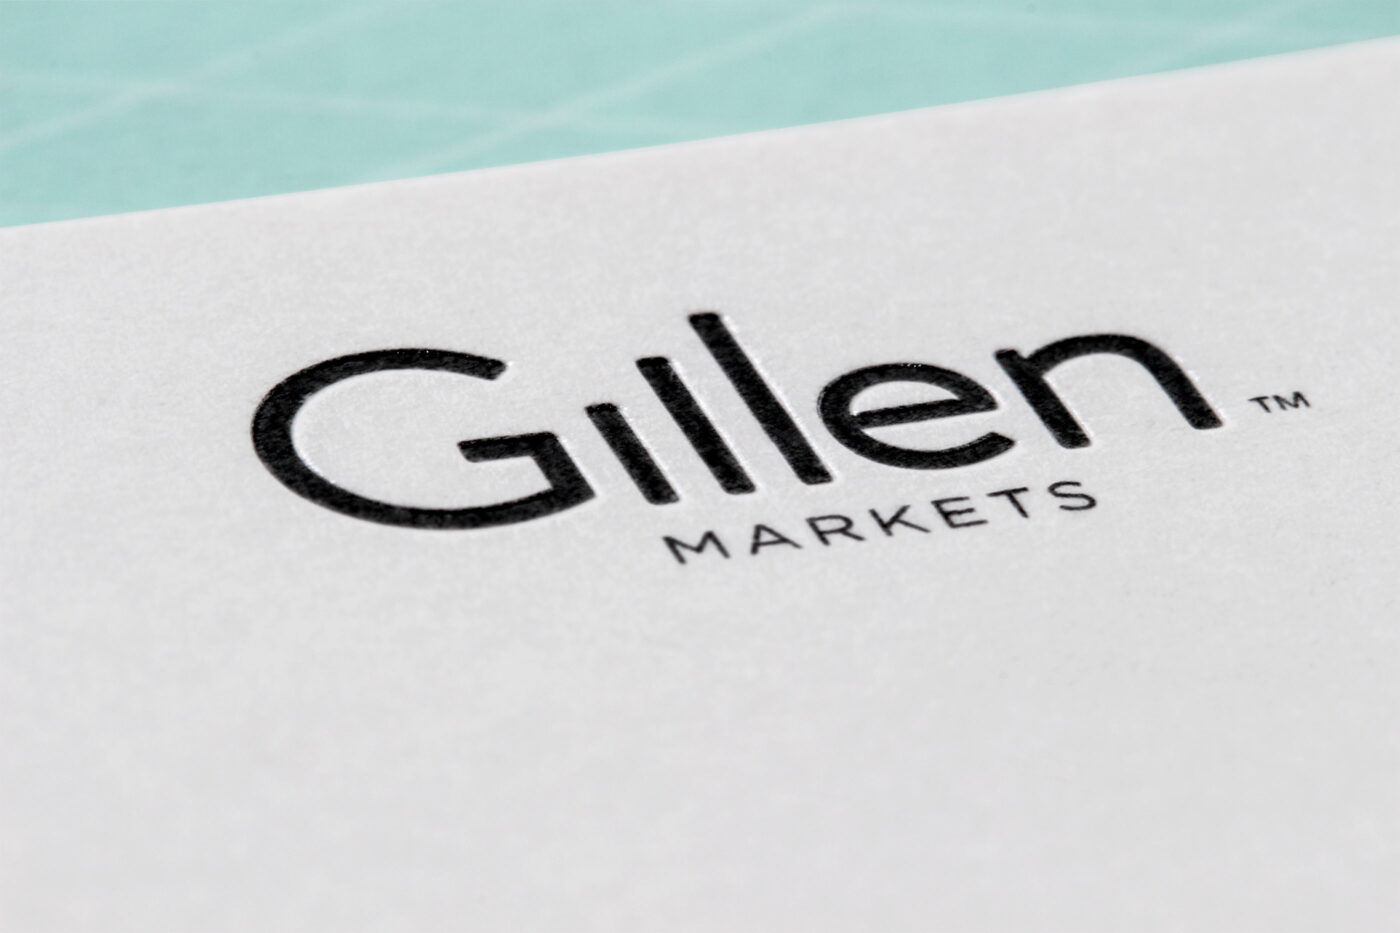 Gillen markets ci studio dublin successful do it yourself investors we rebranded the company including all brand communications and the strategic planning and design of their website solutioingenieria Choice Image